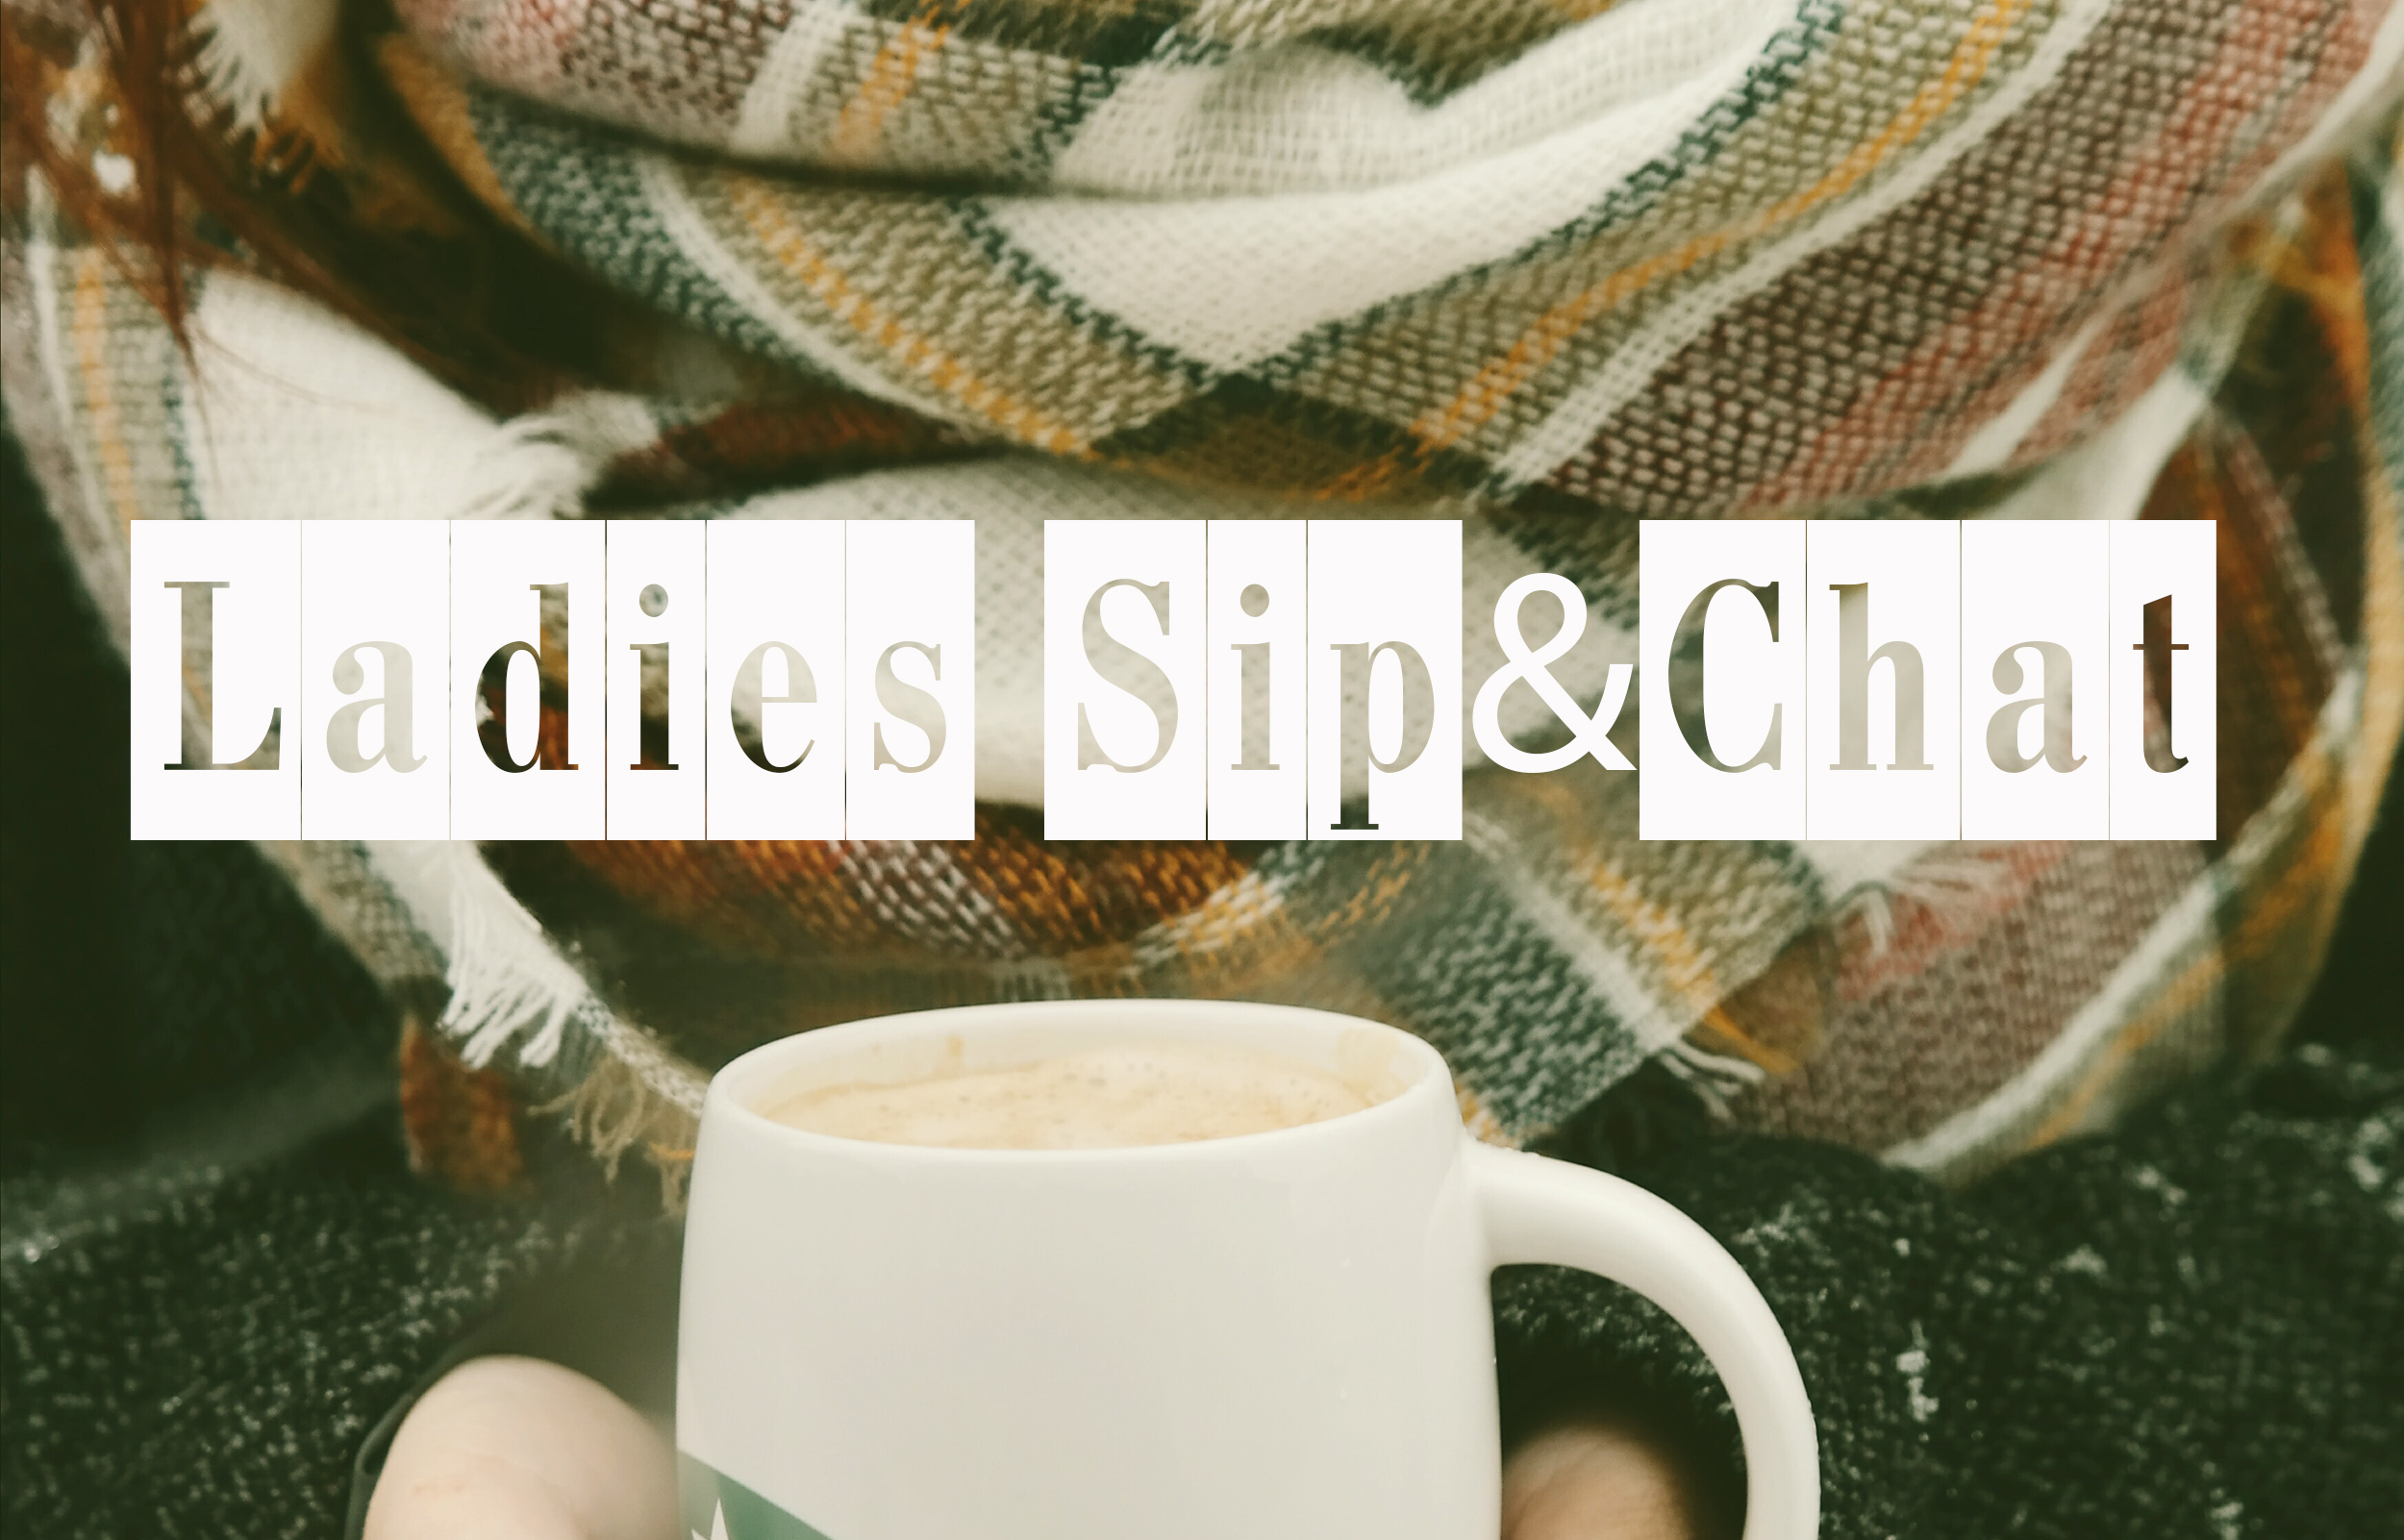 ladies sip and chat 001 image